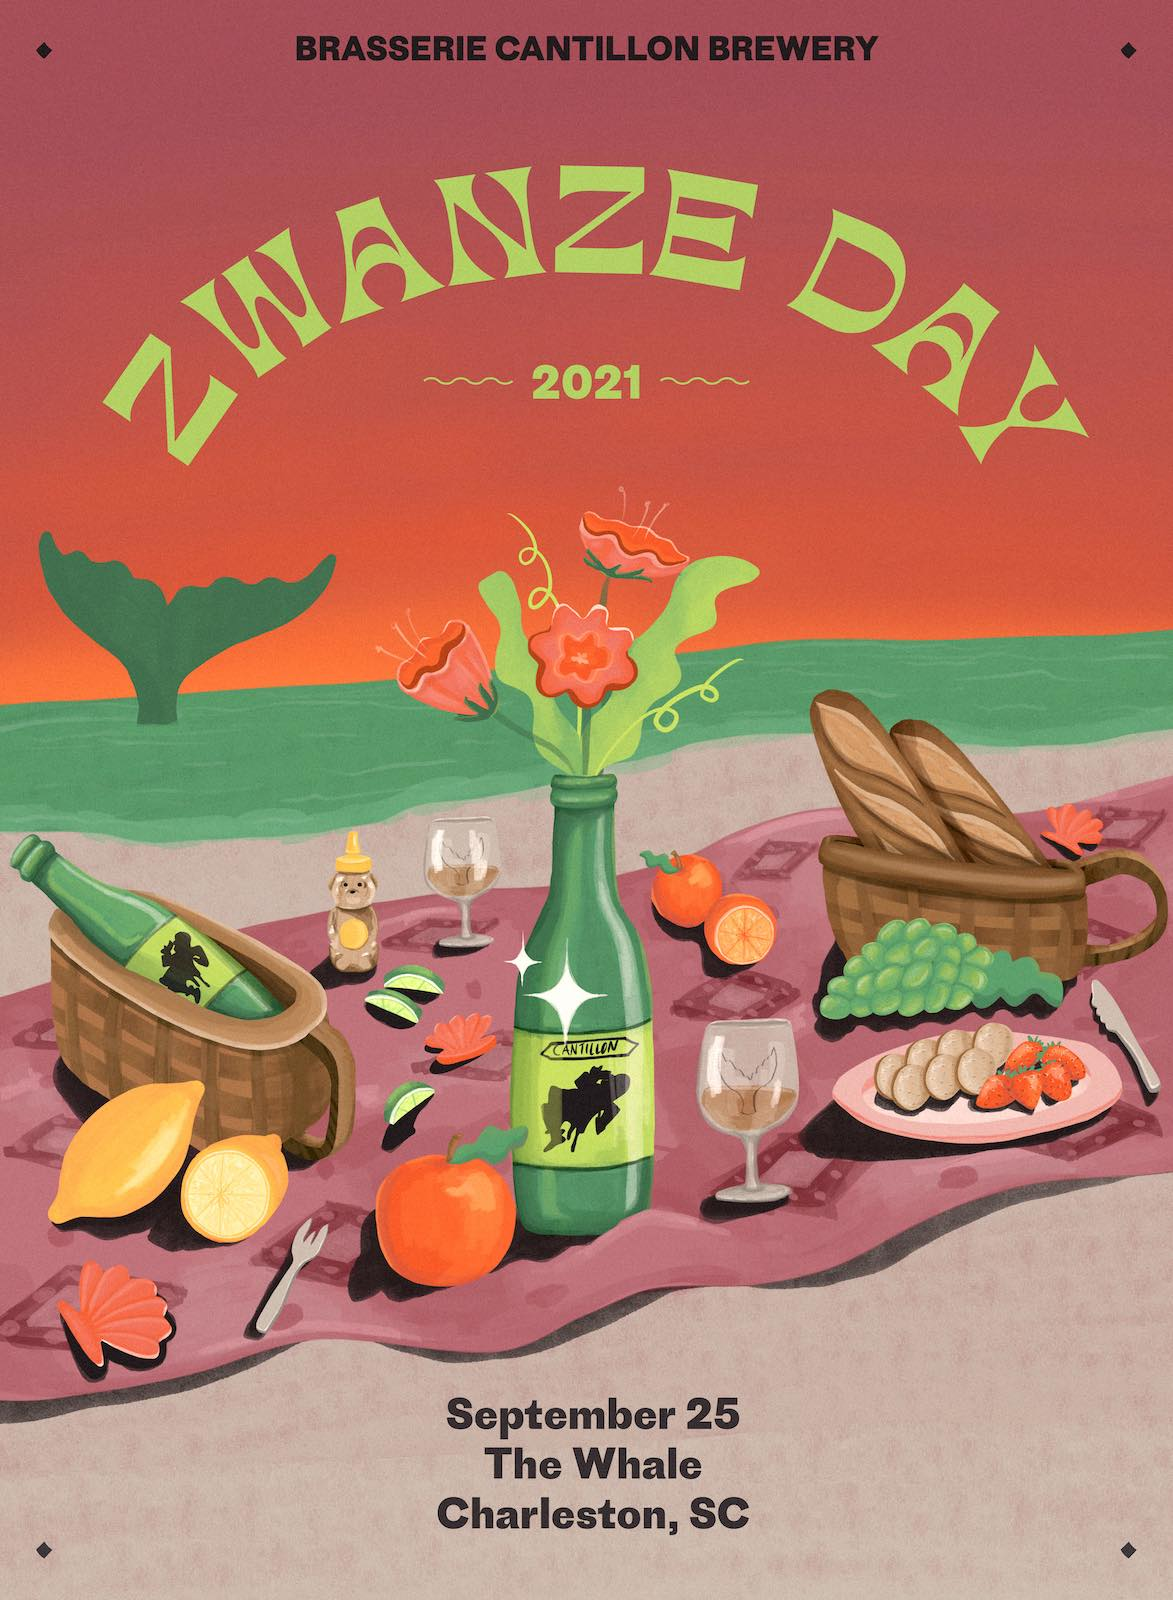 Zwanze Day is coming